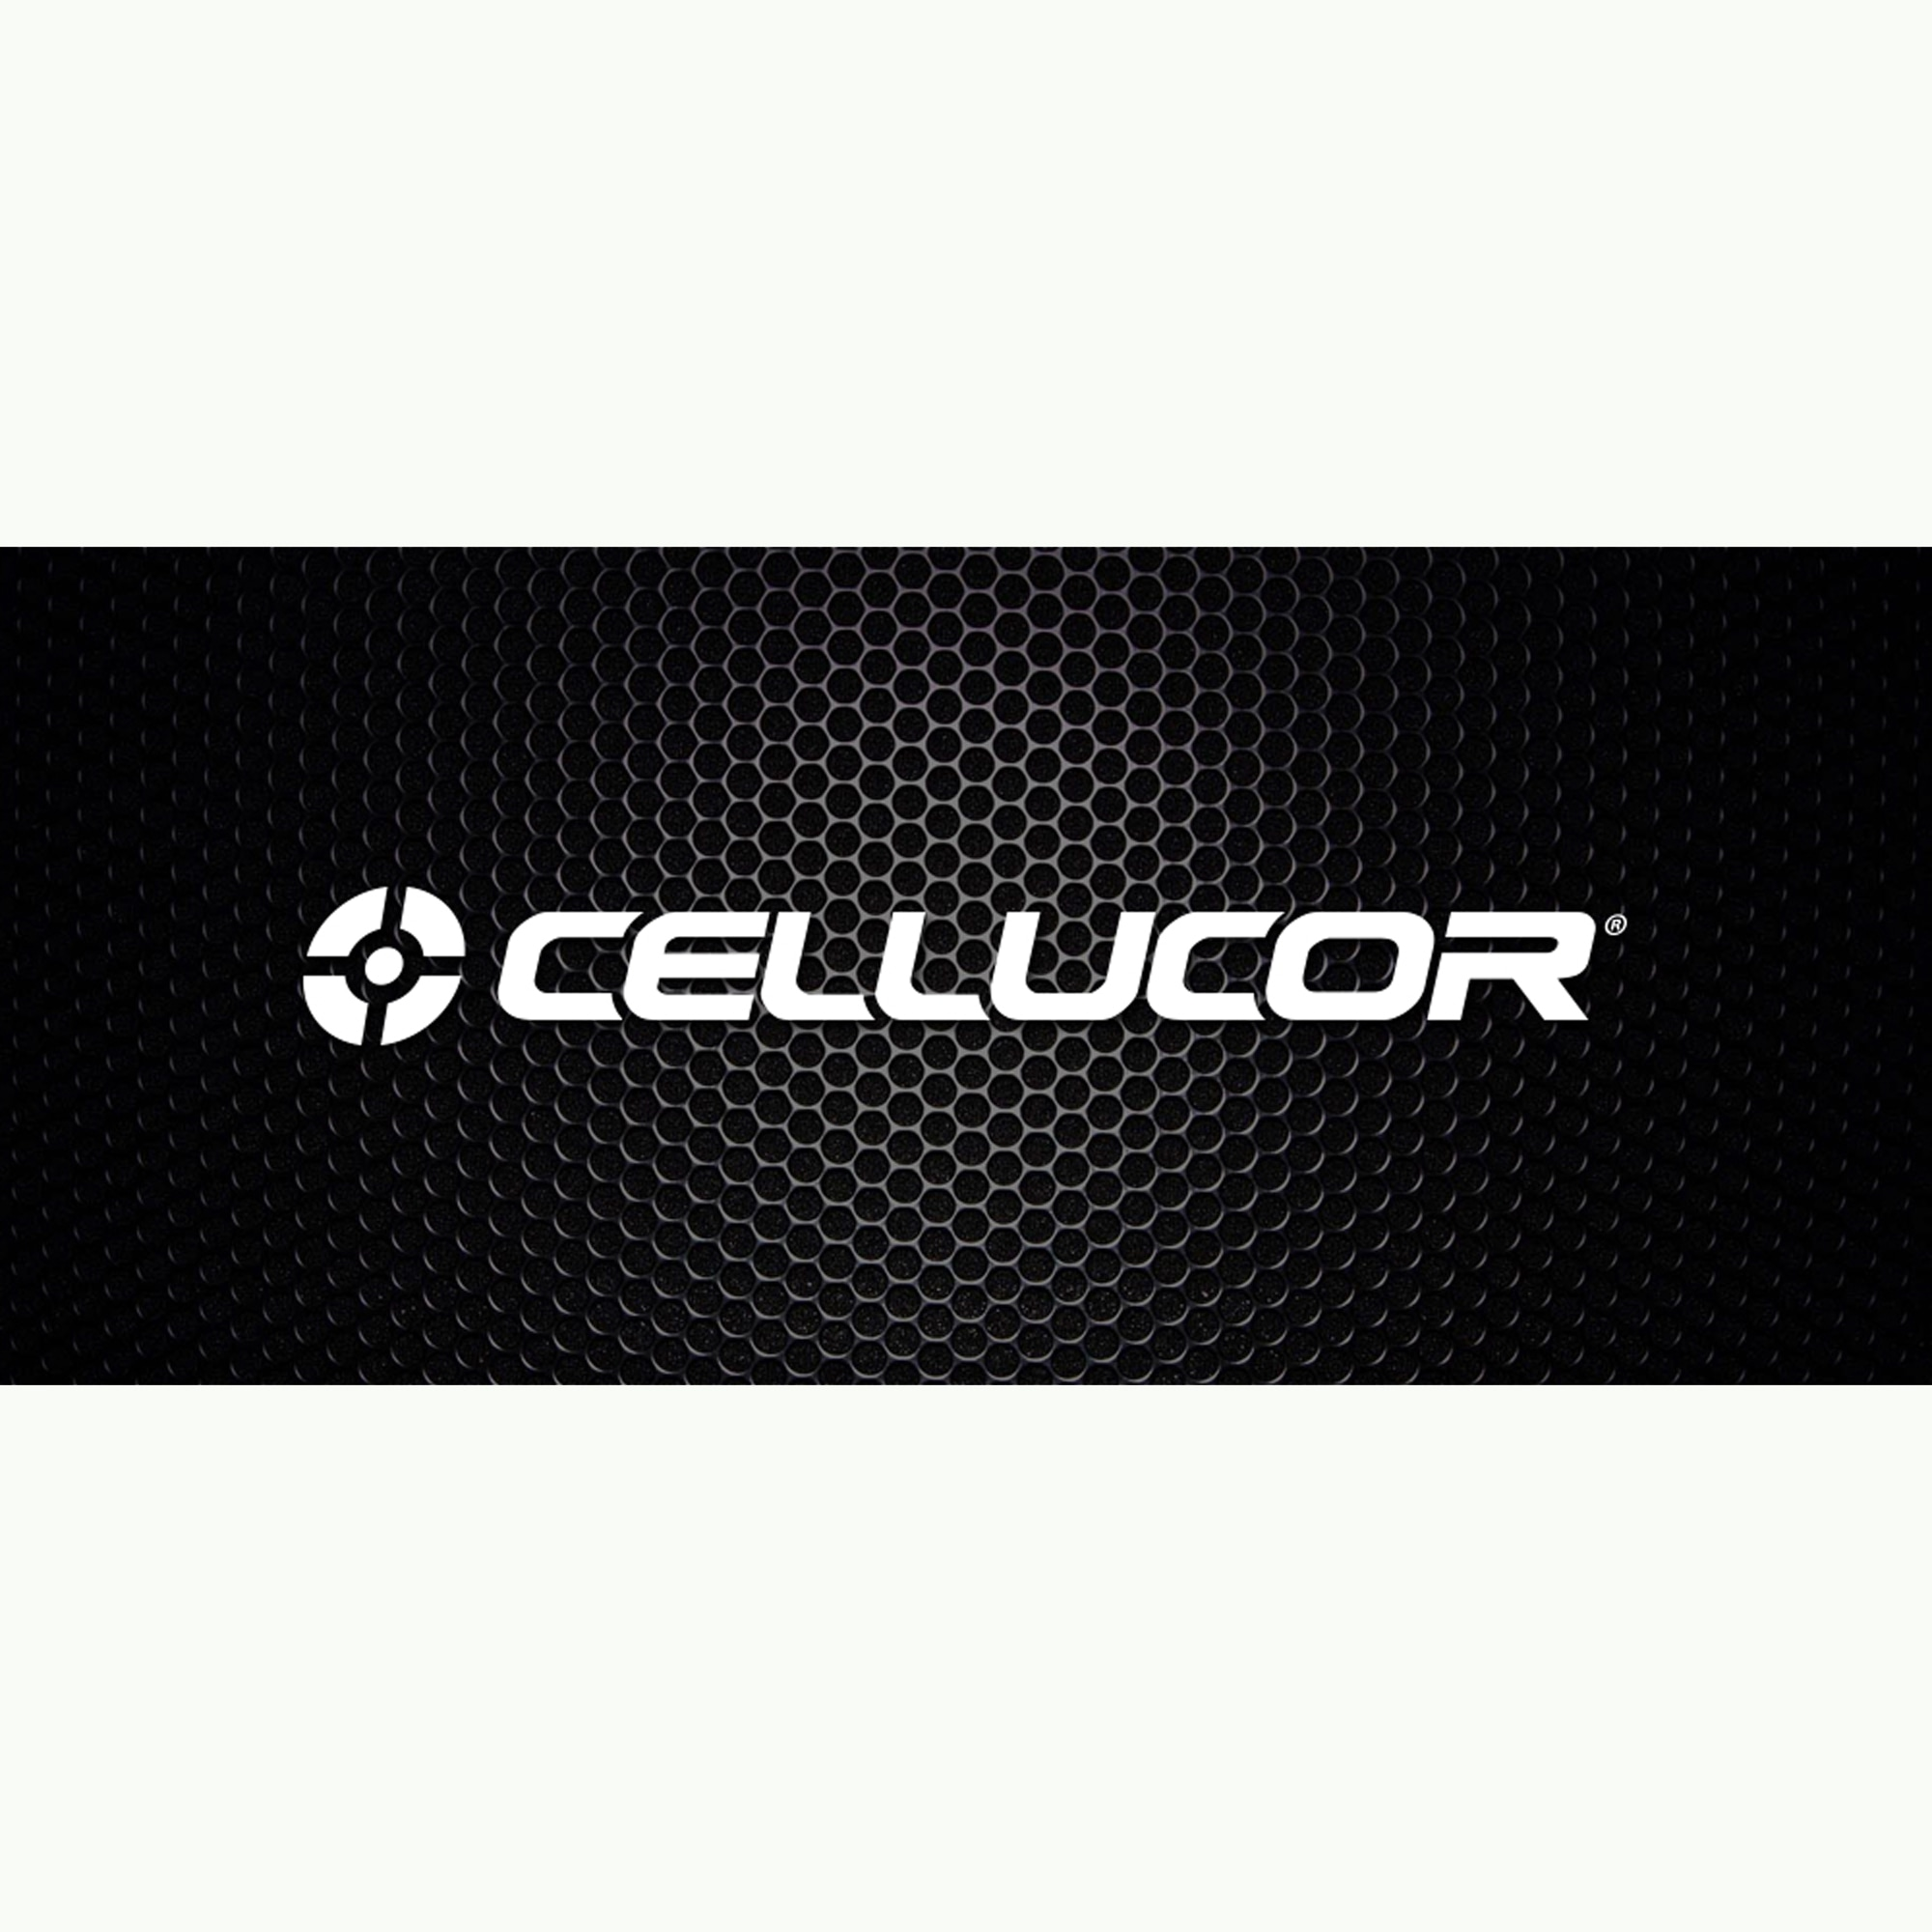 Cellucor promo codes